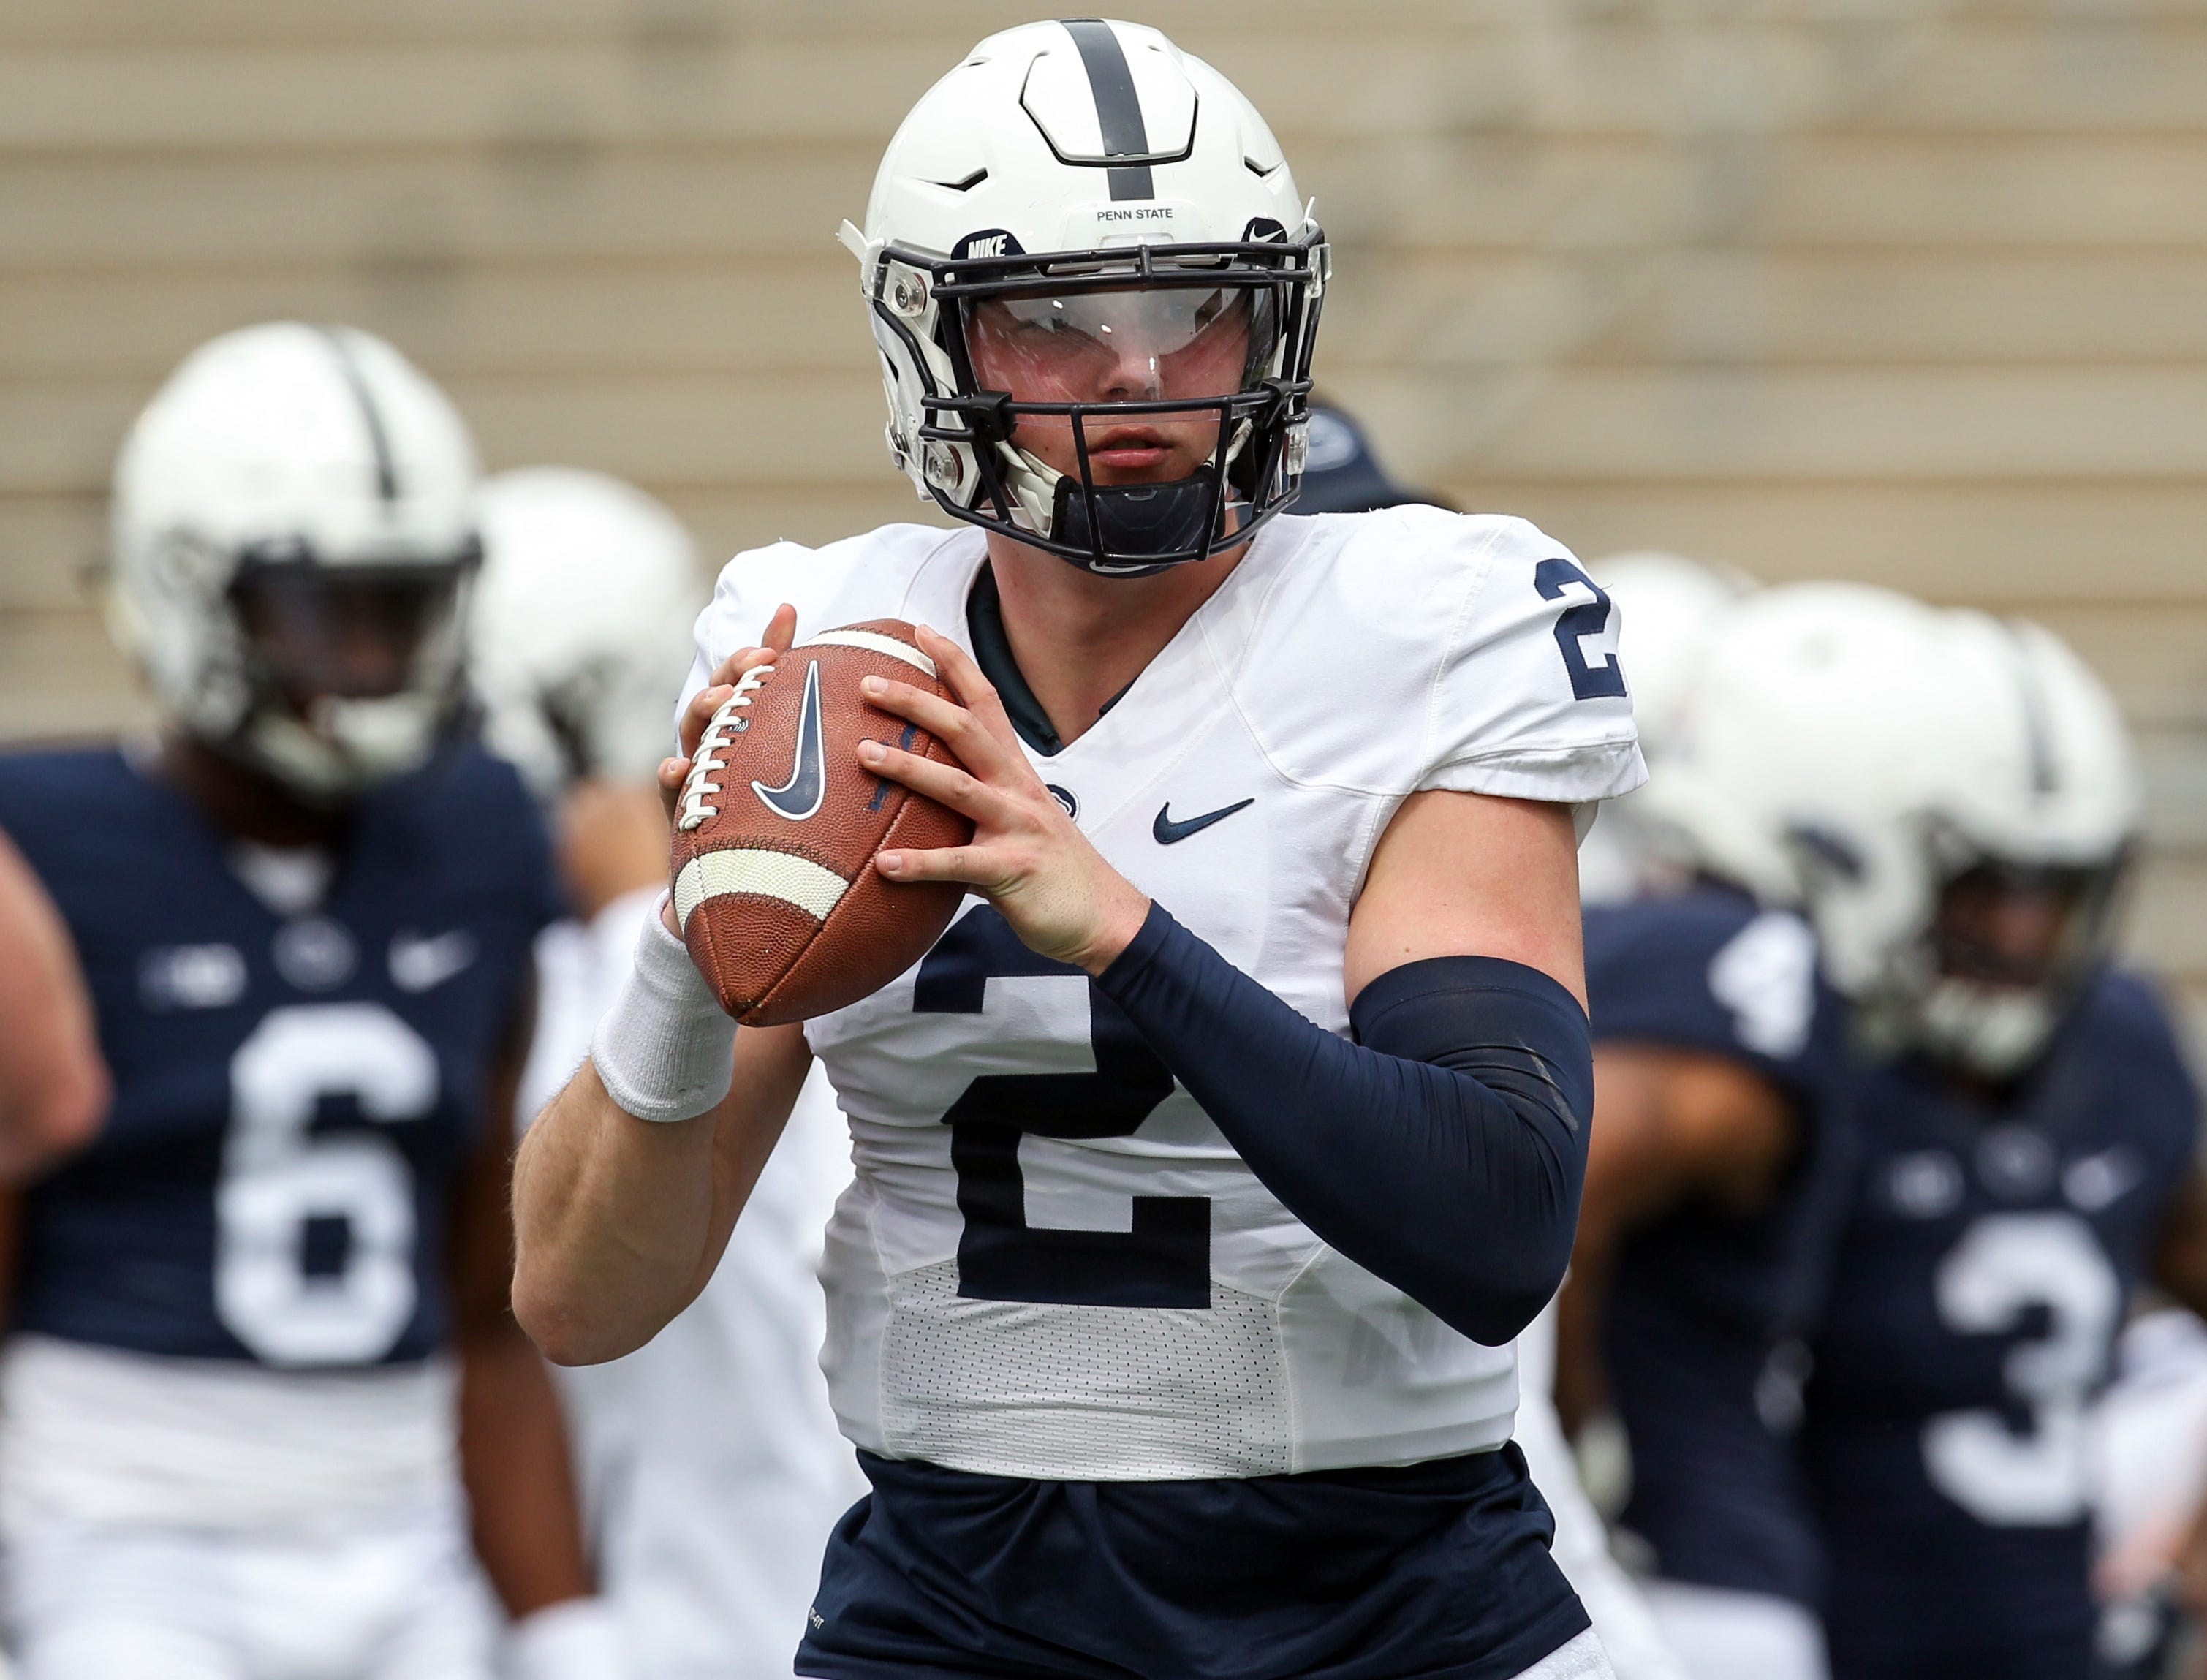 Penn State quarterback Tommy Stevens looks to throw a pass during a warmup prior to the team's Blue White spring game. (Photo: Matthew OHaren, USA TODAY Sports)